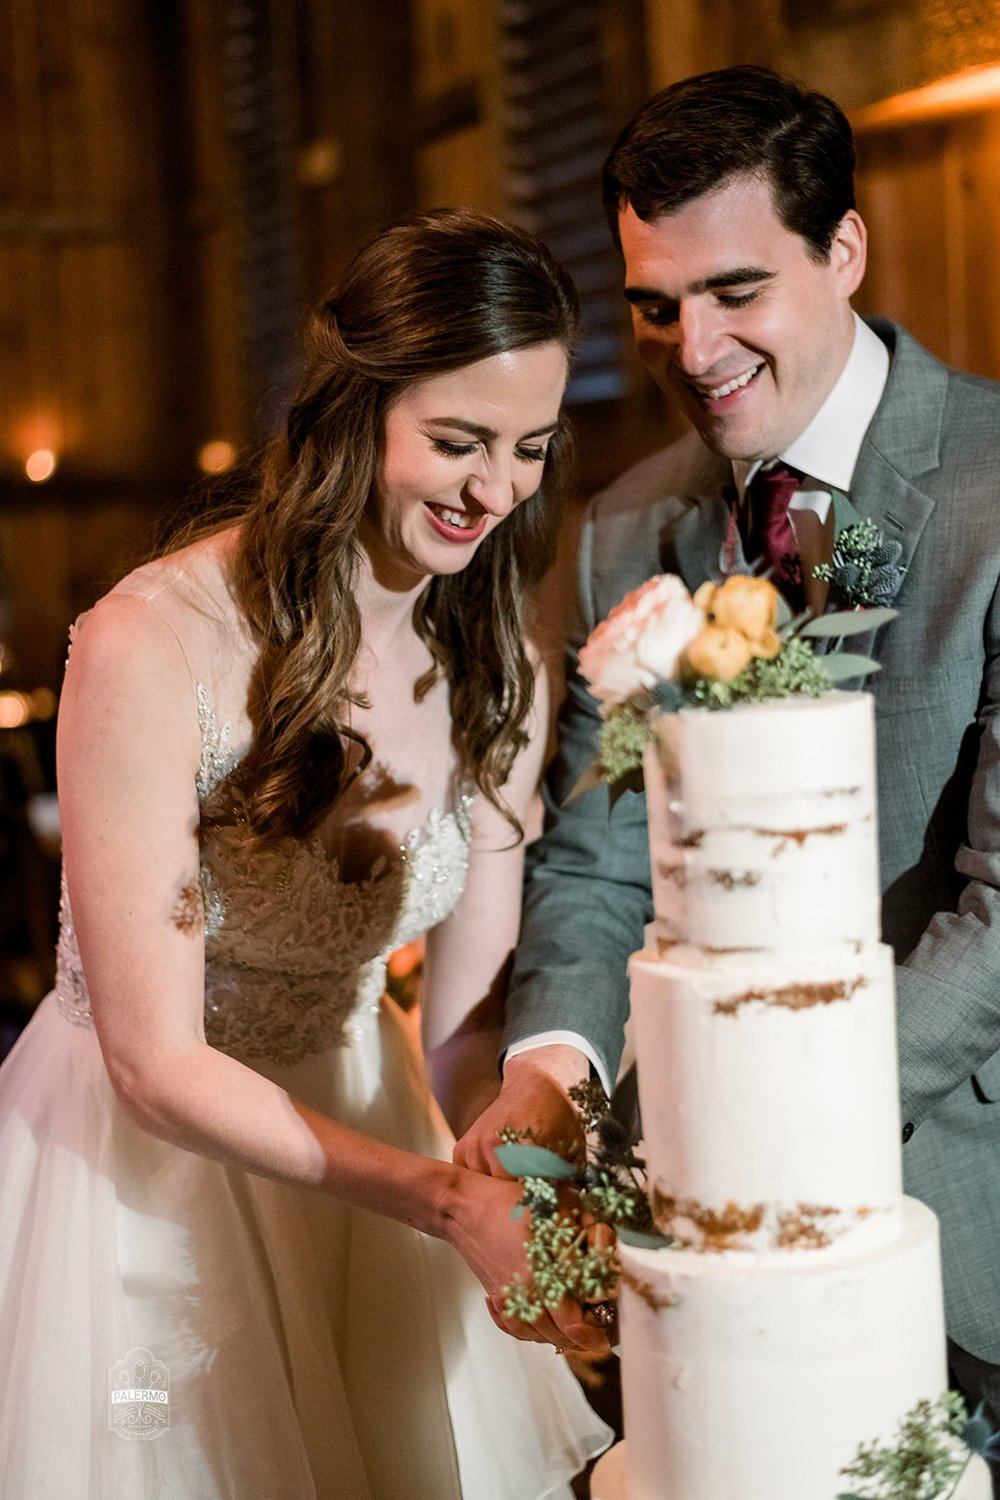 Bride and groom cut wedding cake at fall barn wedding in Pittsburgh, PA planned by Exhale Events. Find more wedding inspiration at exhale-events.com!